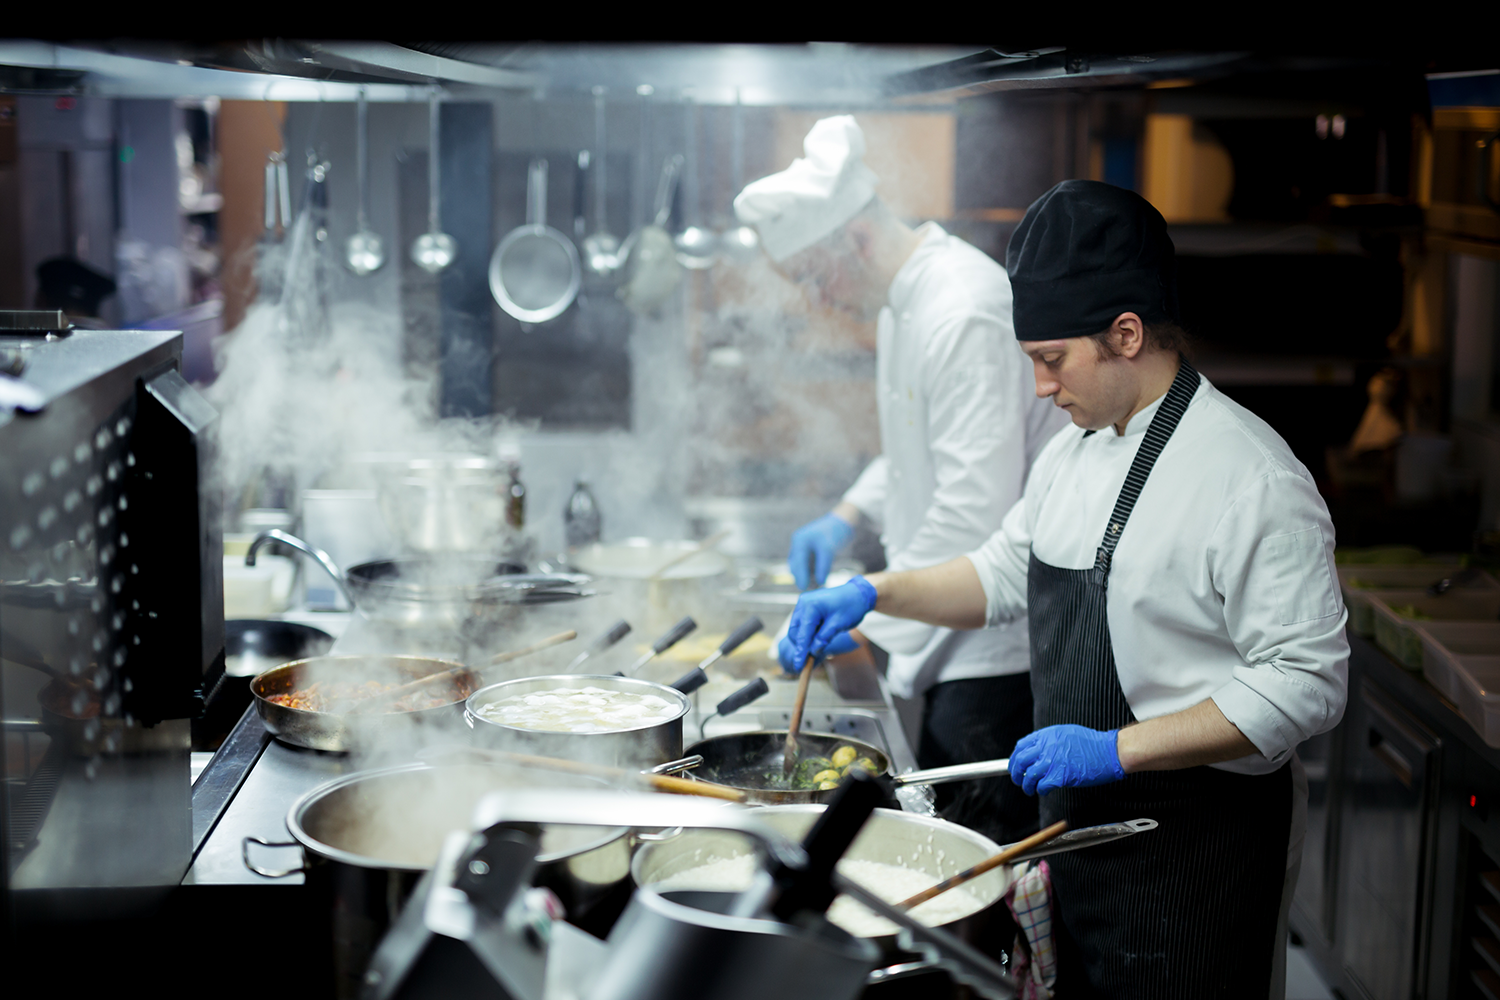 Restaurant managers can help their kitchen staff by making sure the guest flow management is in good order.